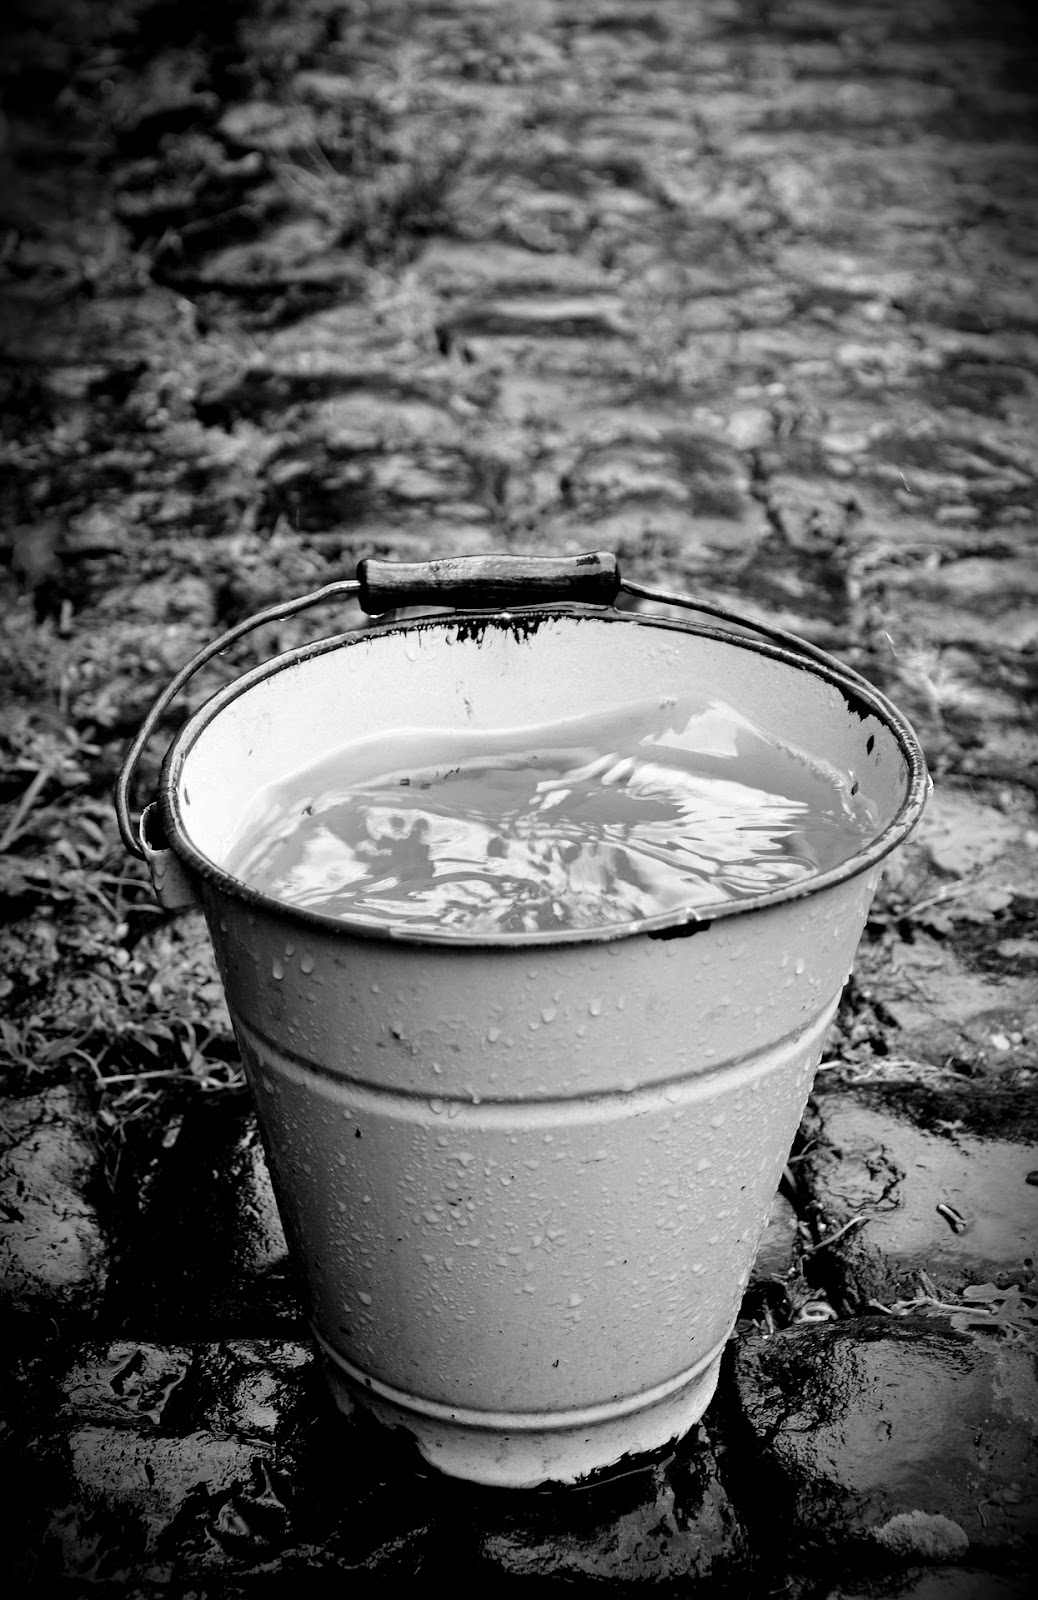 A black and white photo of a bucket collecting rainwater.